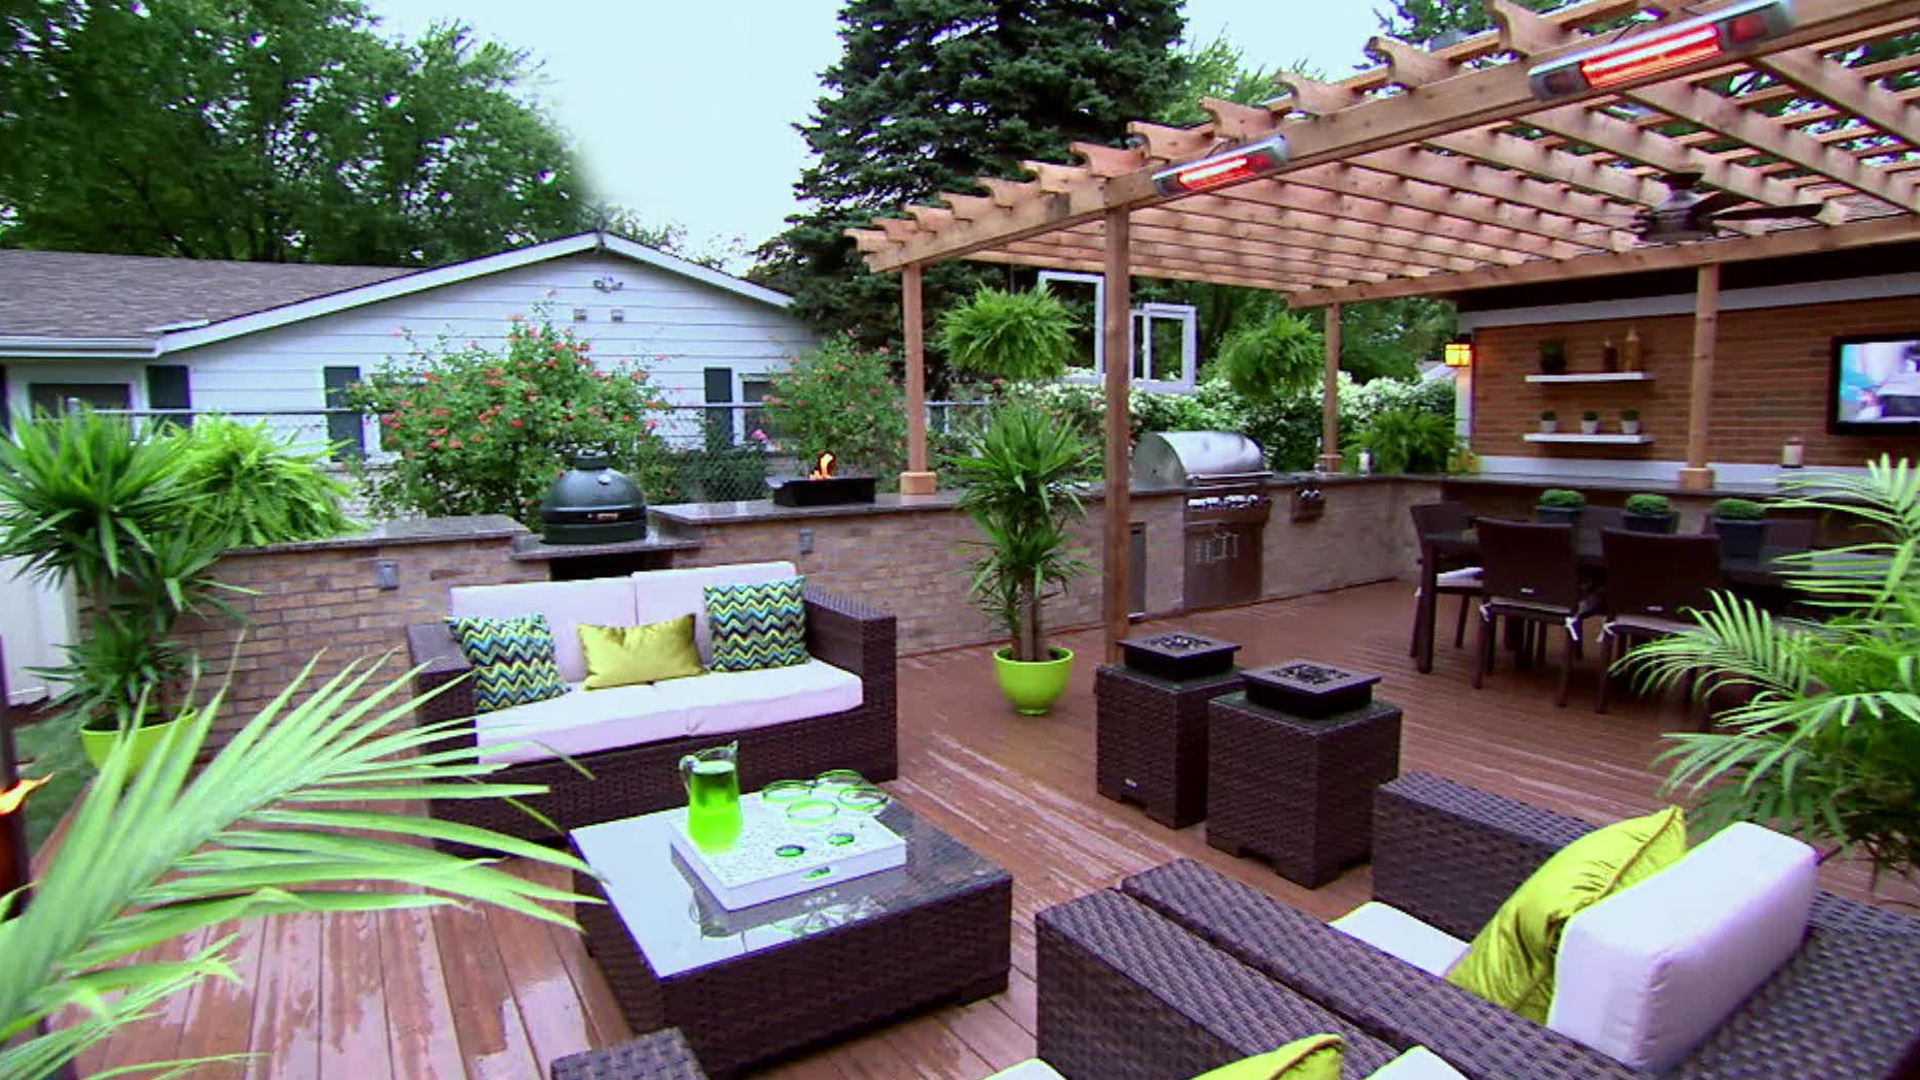 A Chicago couple's deck is transformed into a luxurious outdoor kitchen.